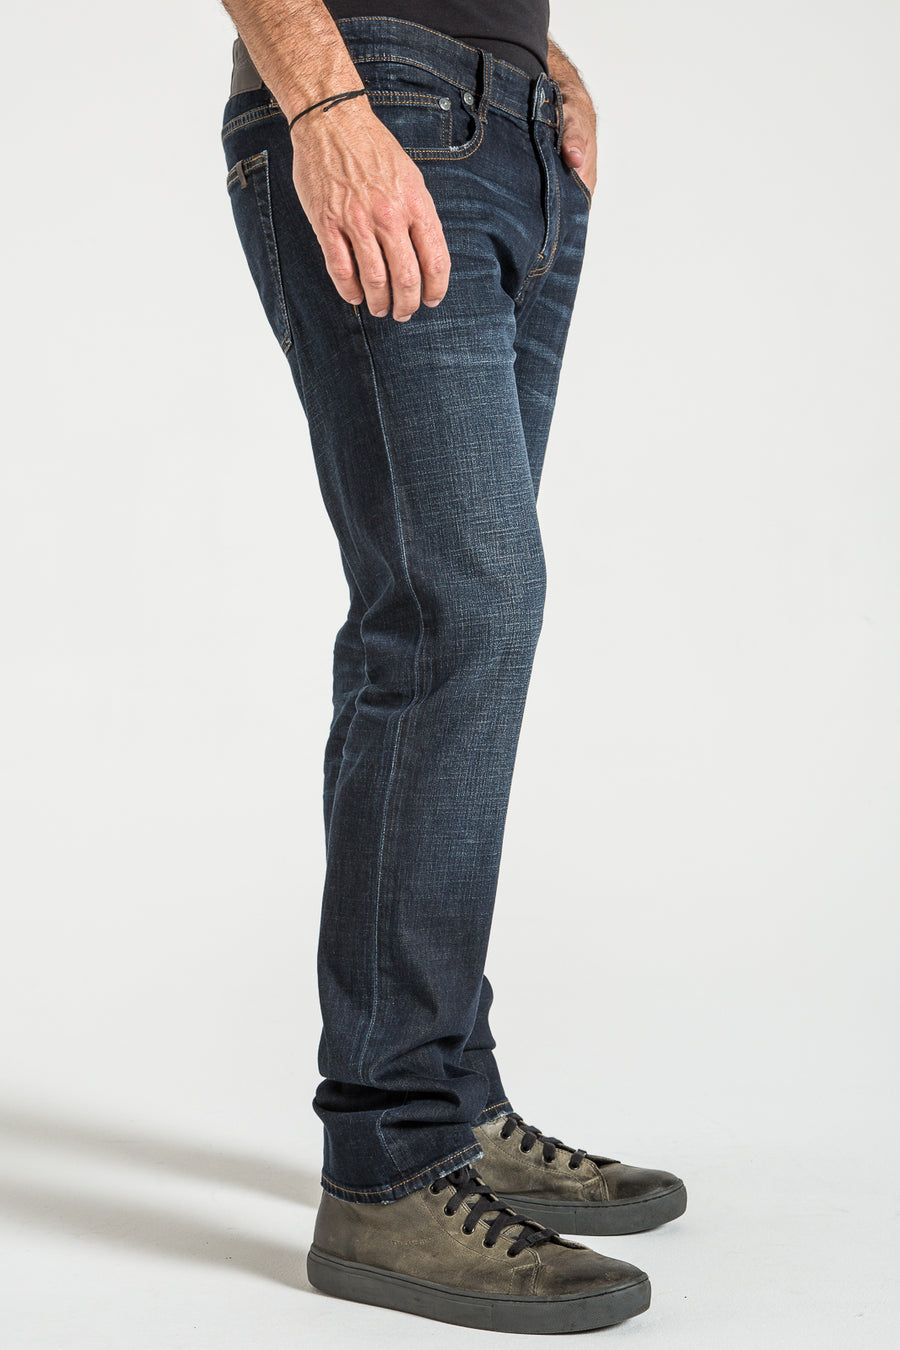 BARFLY SLIM IN QATAR DENIM